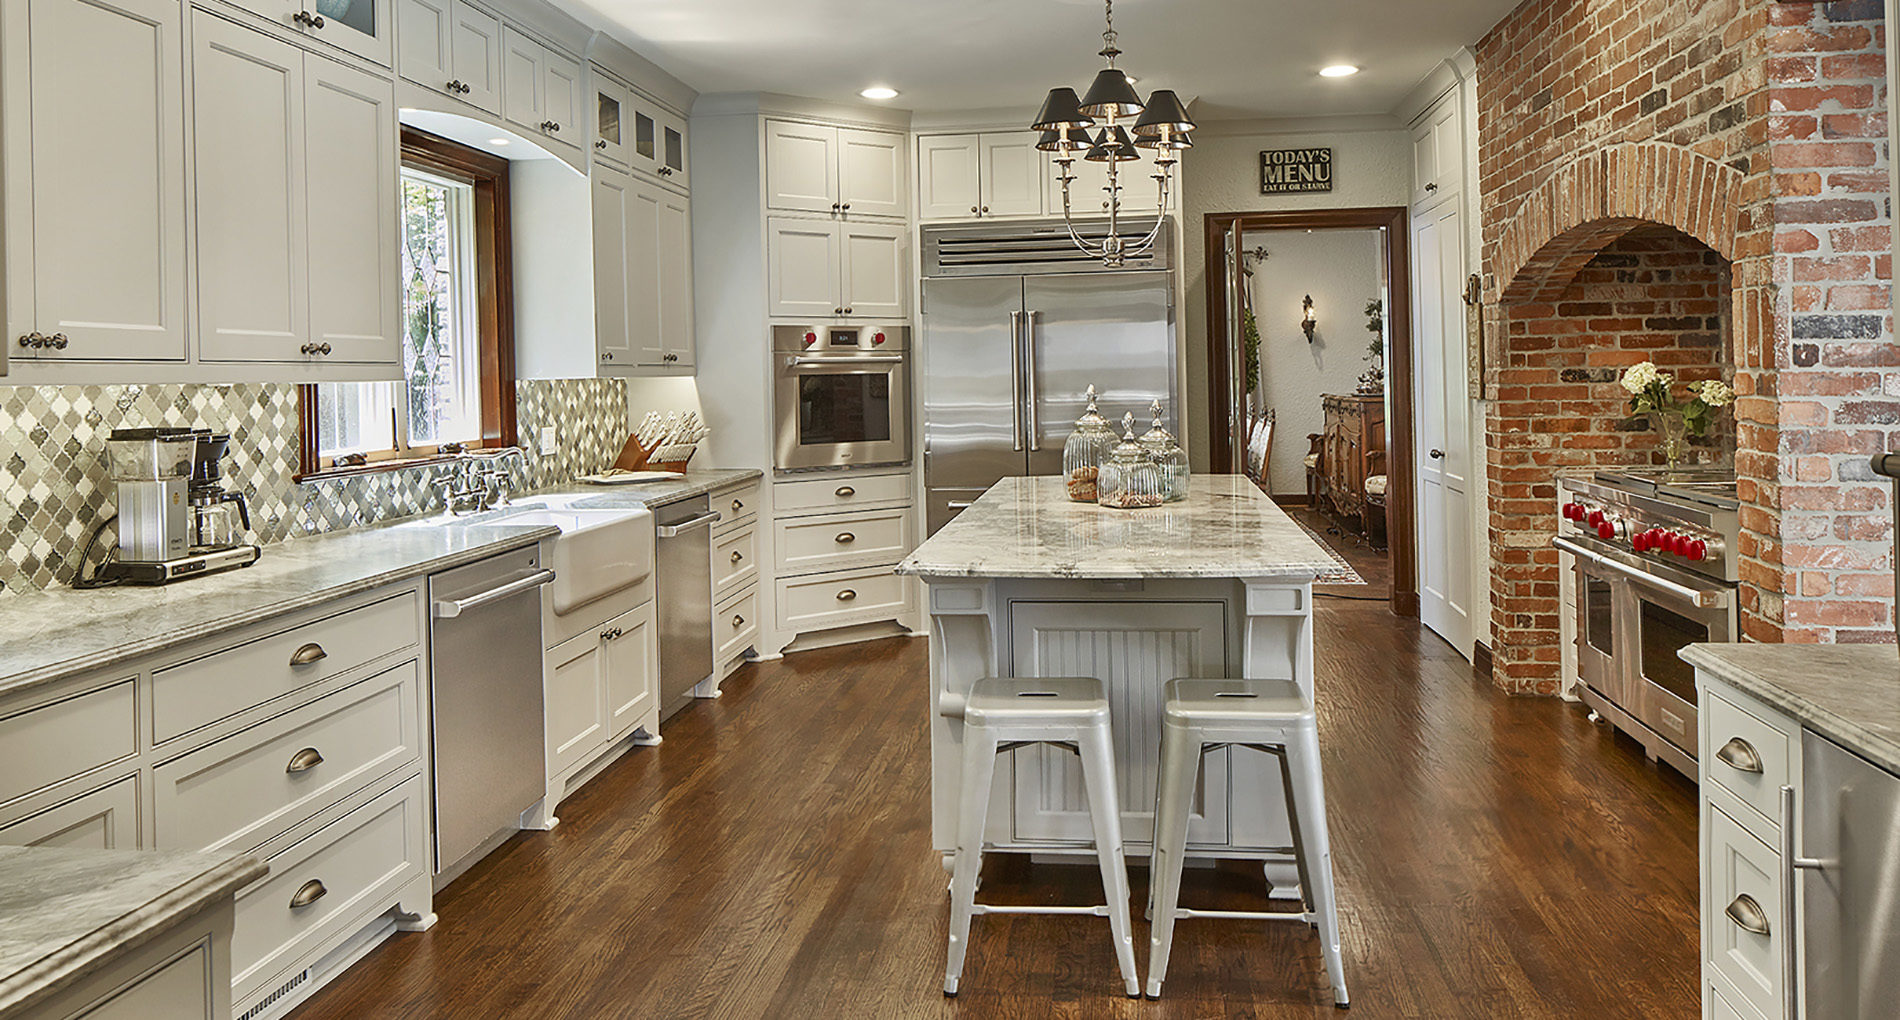 Kitchen Remodel Dallas Traditionalkitchenandentertainingspaces Slider